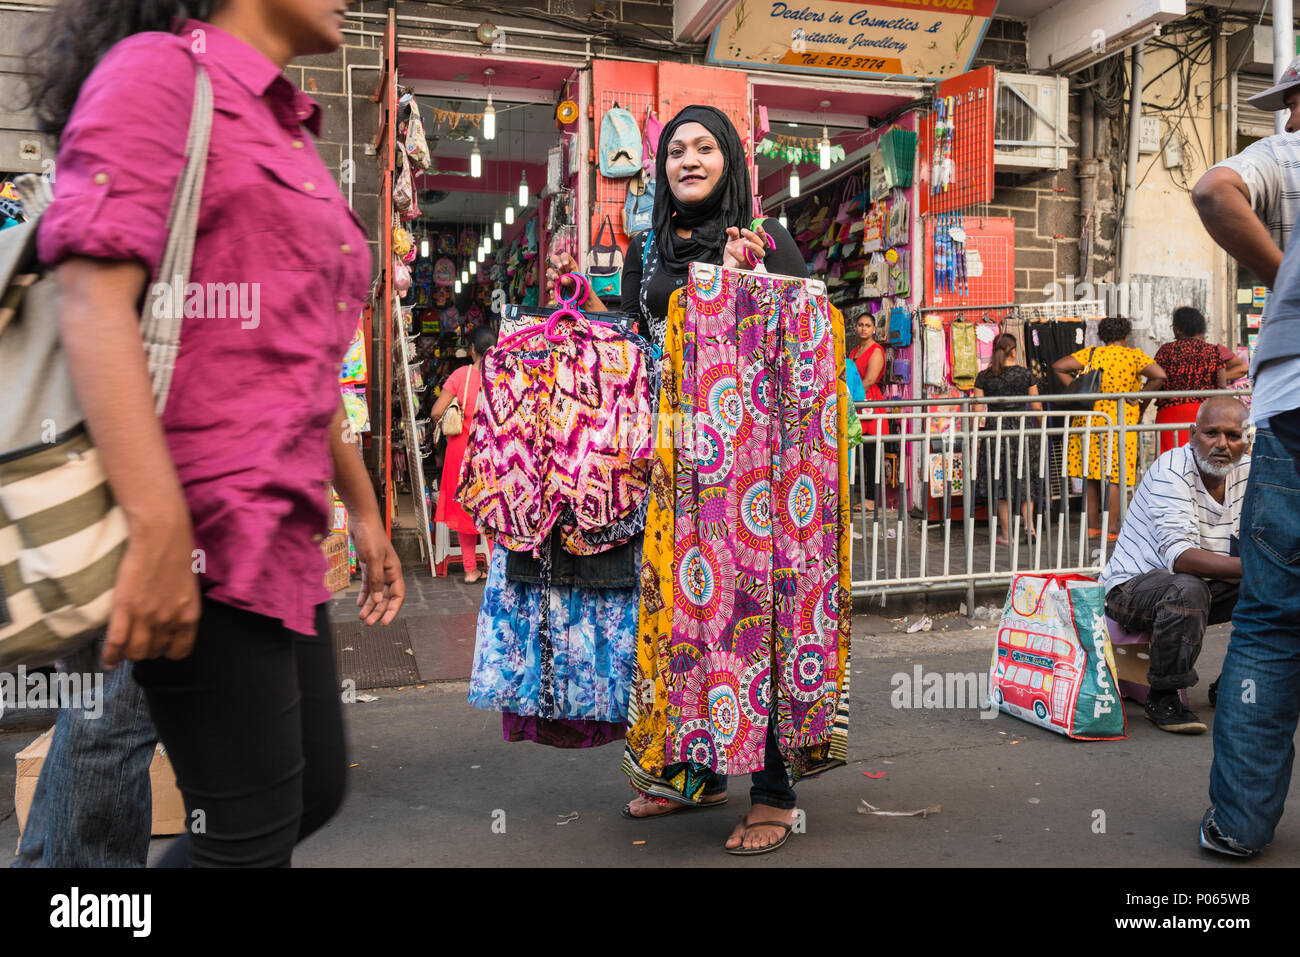 Woman street vendor selling clothes in a street market in downtown Port Louis, Mauritius - Stock Image